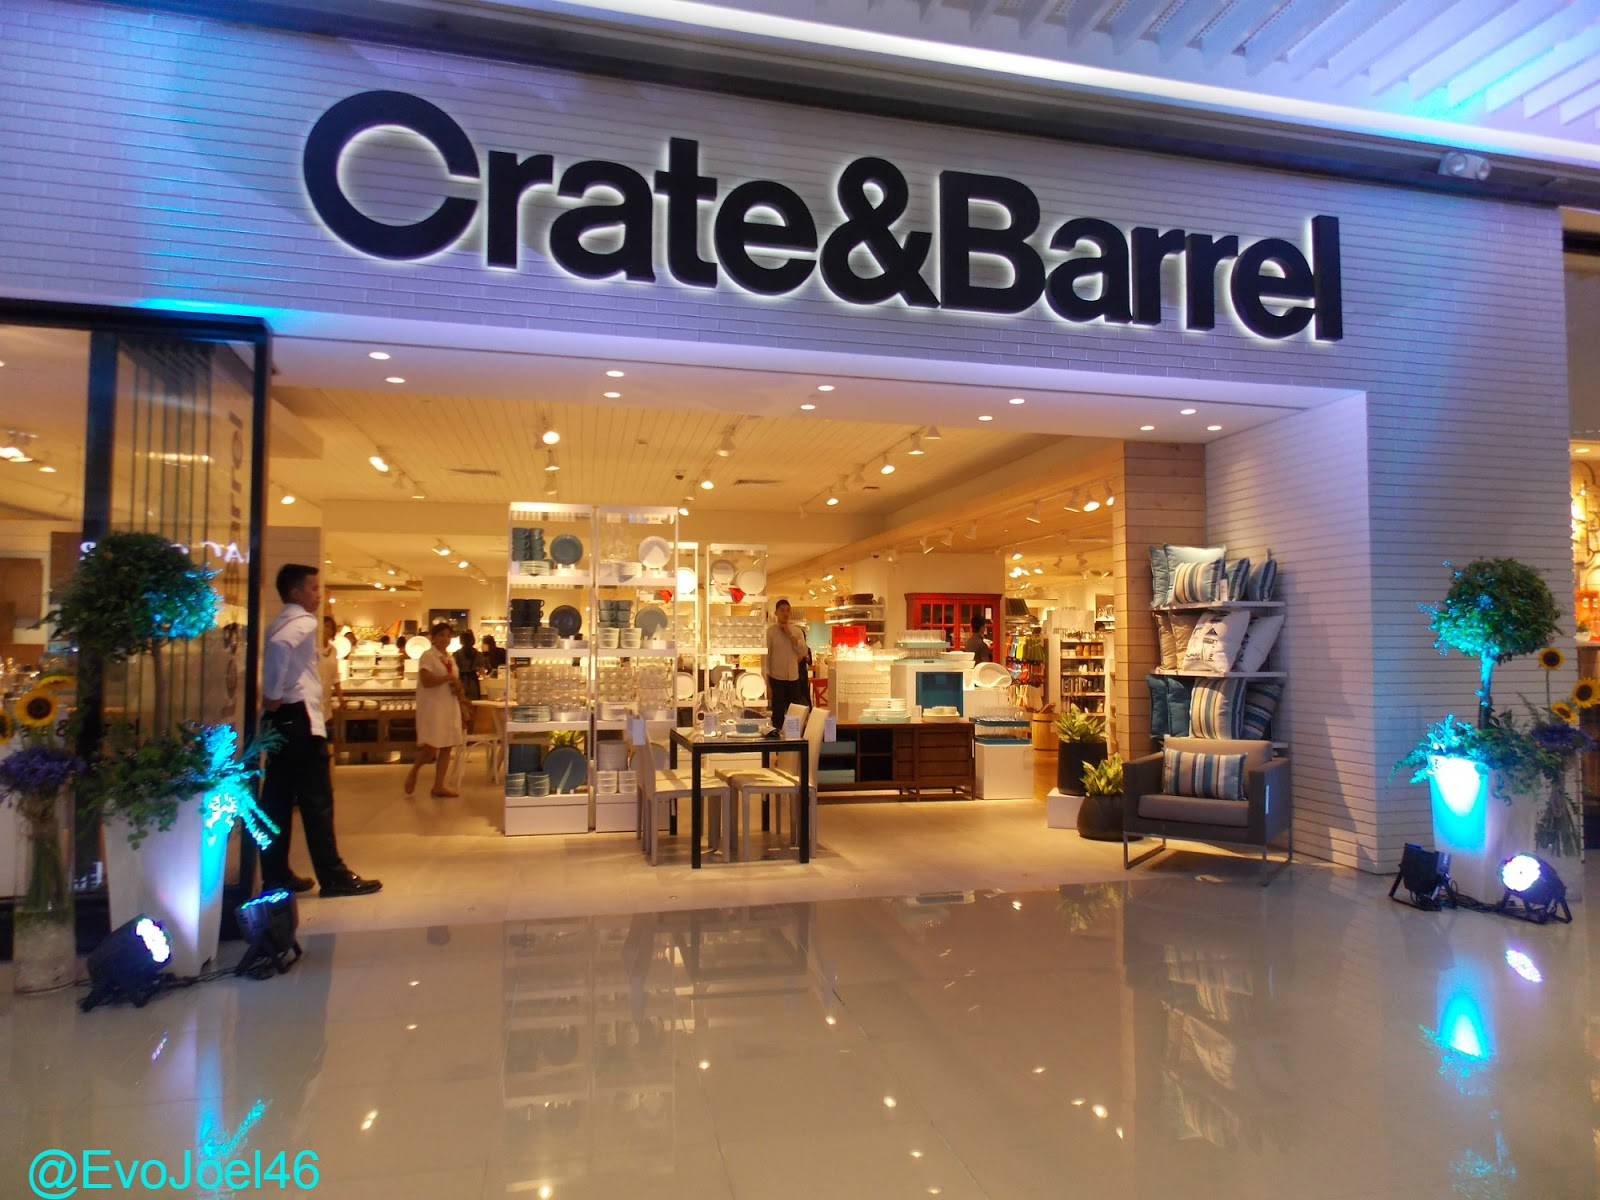 Furniture stores in manila philippines - Crate Barrel Launches Spring Summer Collection For Manila Branches The Leading American Furniture Store